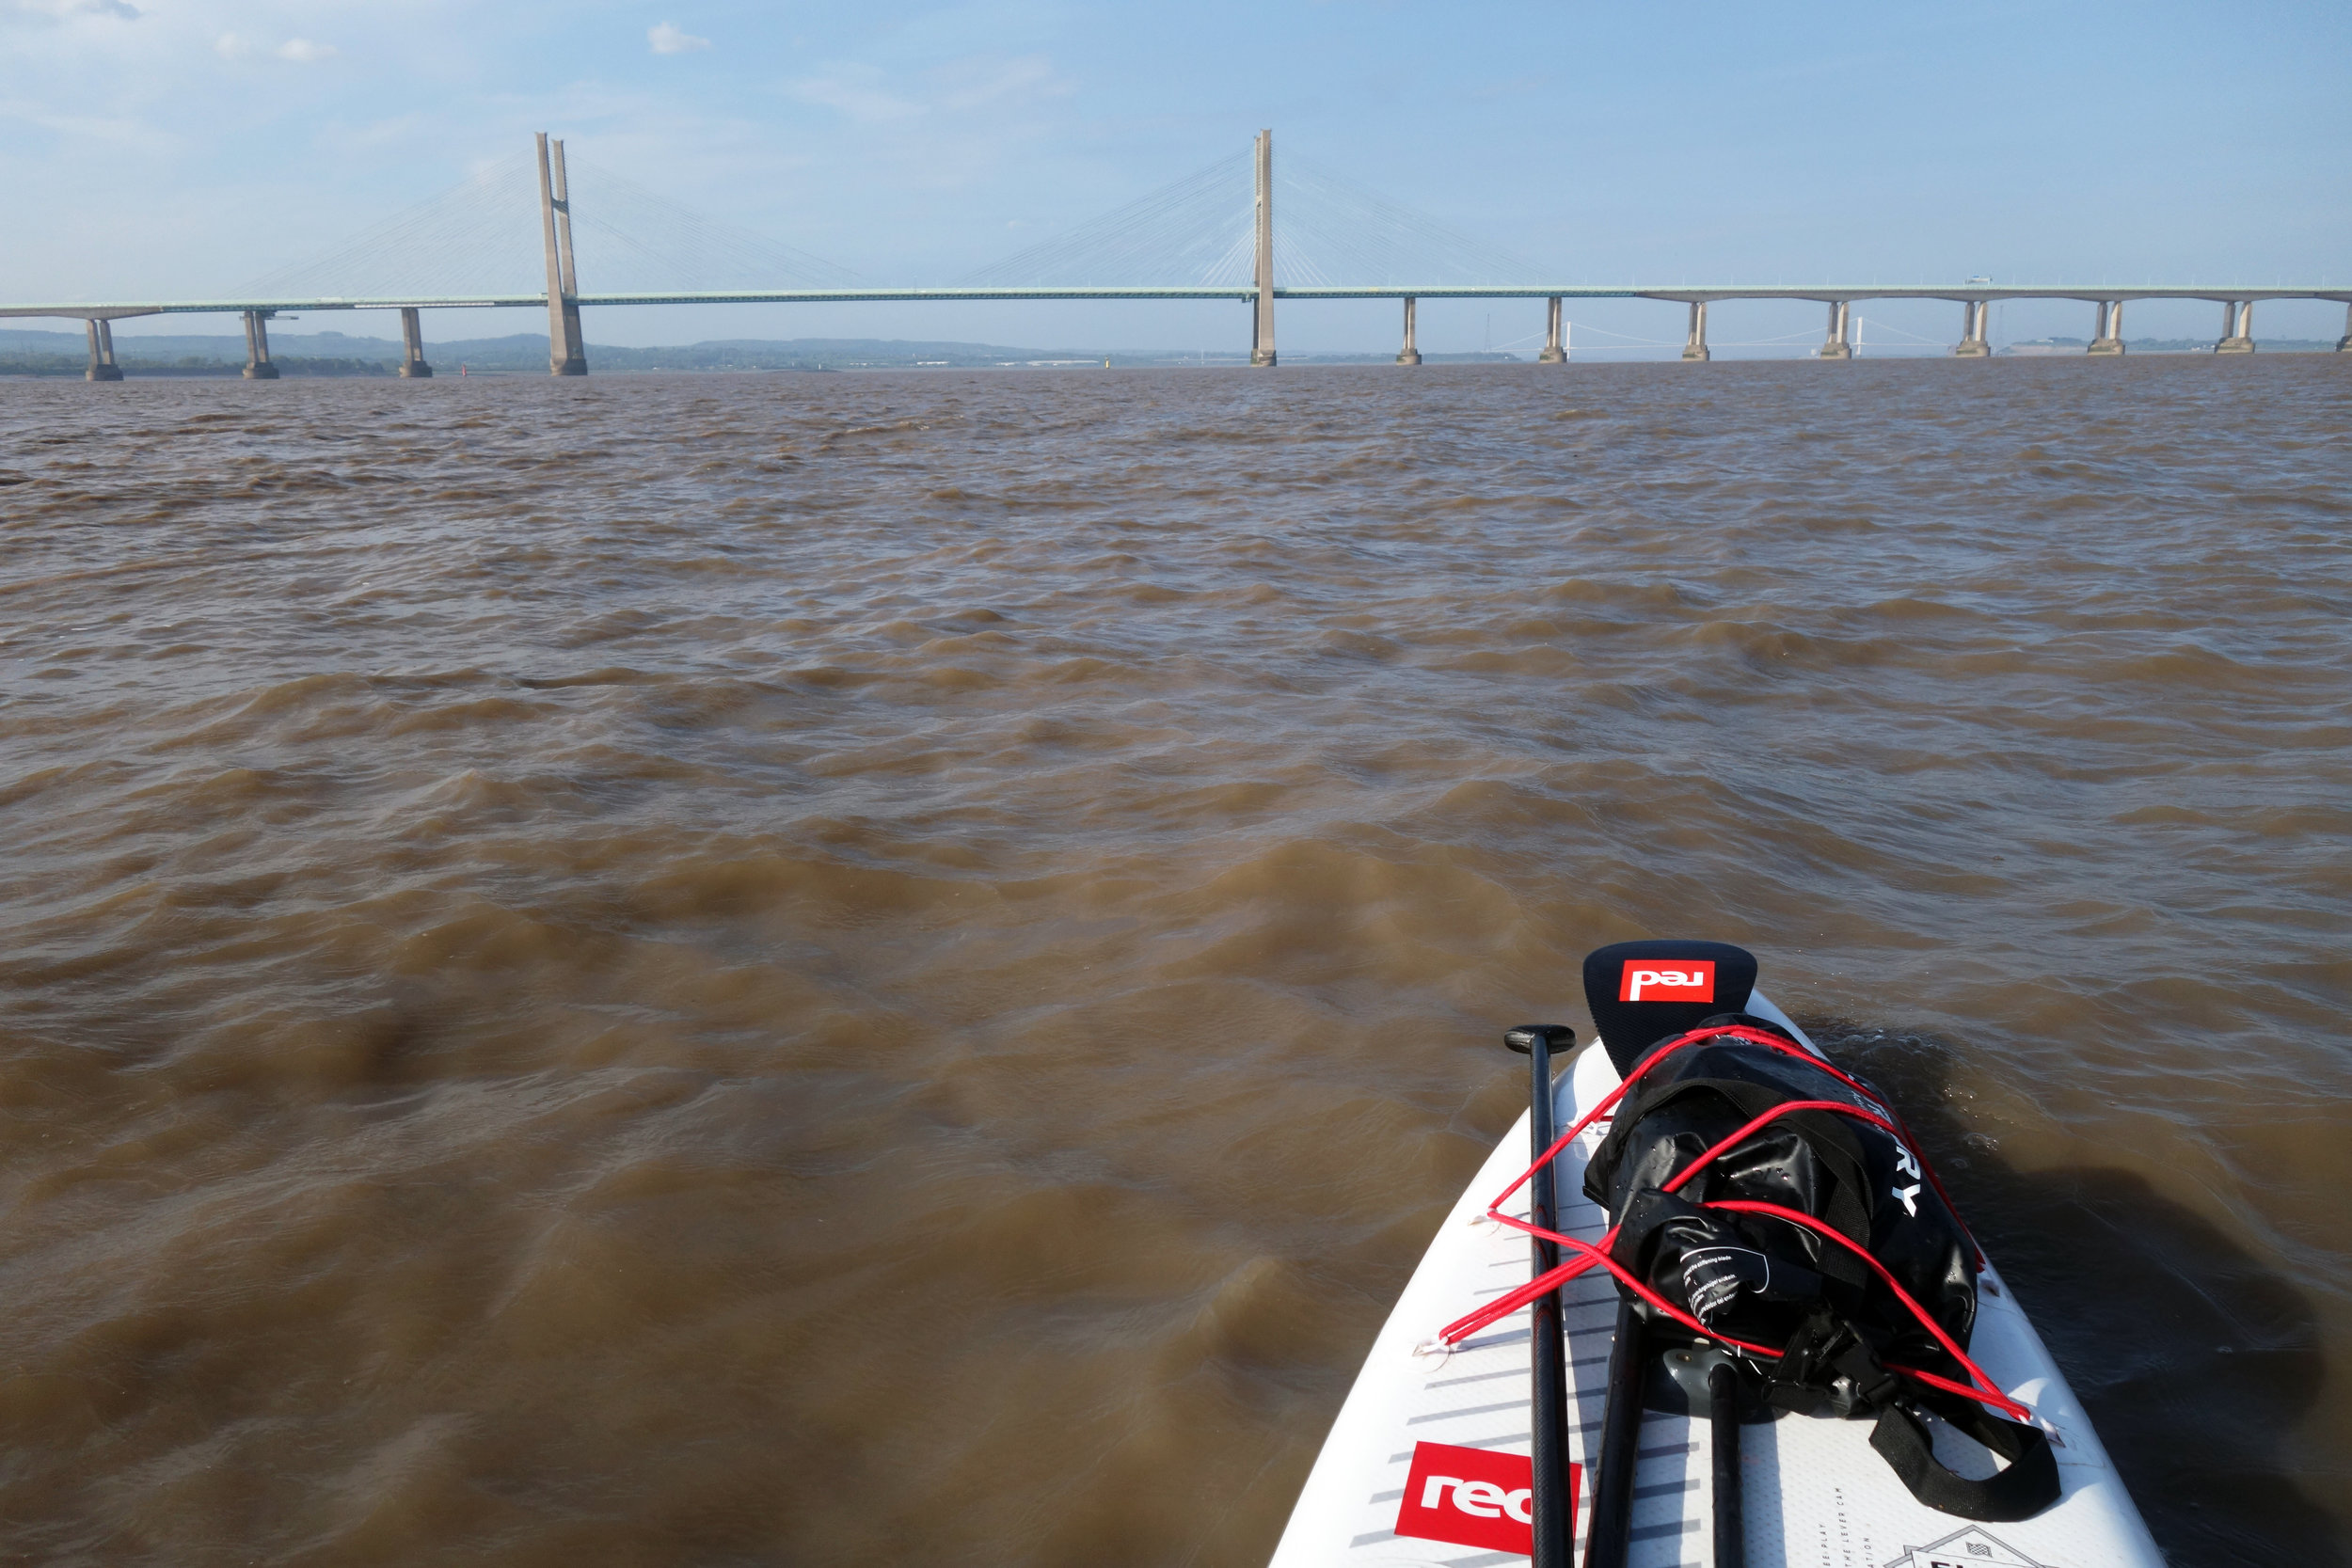 Approaching the New Severn Crossing via the Shoots Channel on an 8 knot spring tide